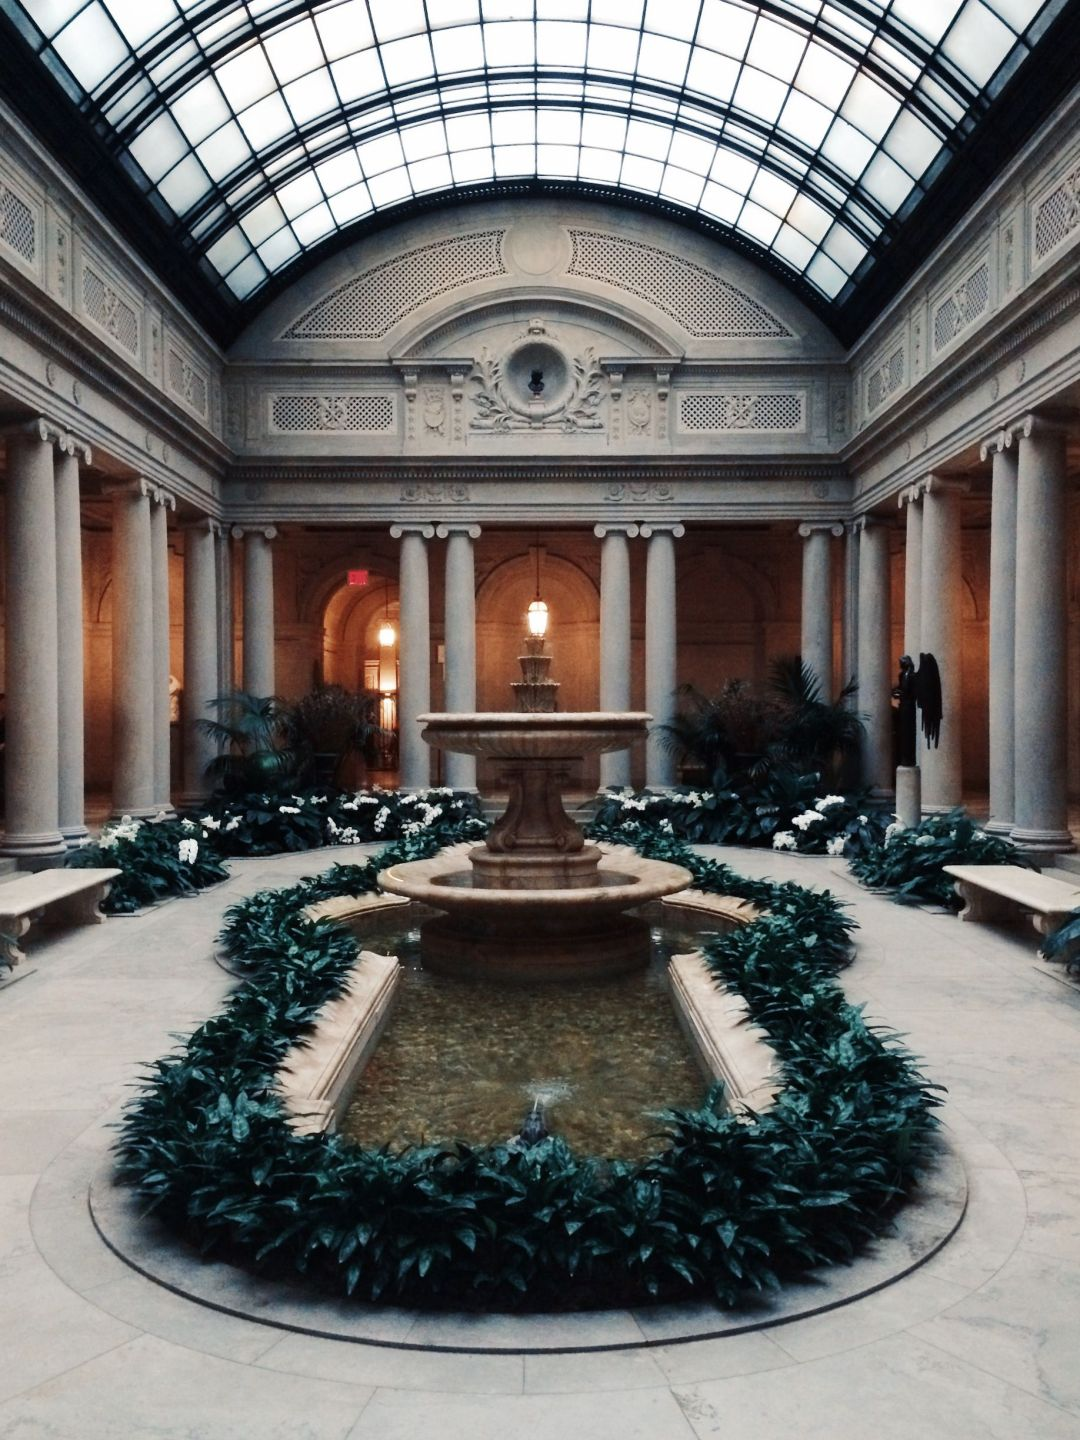 Guia de museus em NY The Frick Collection